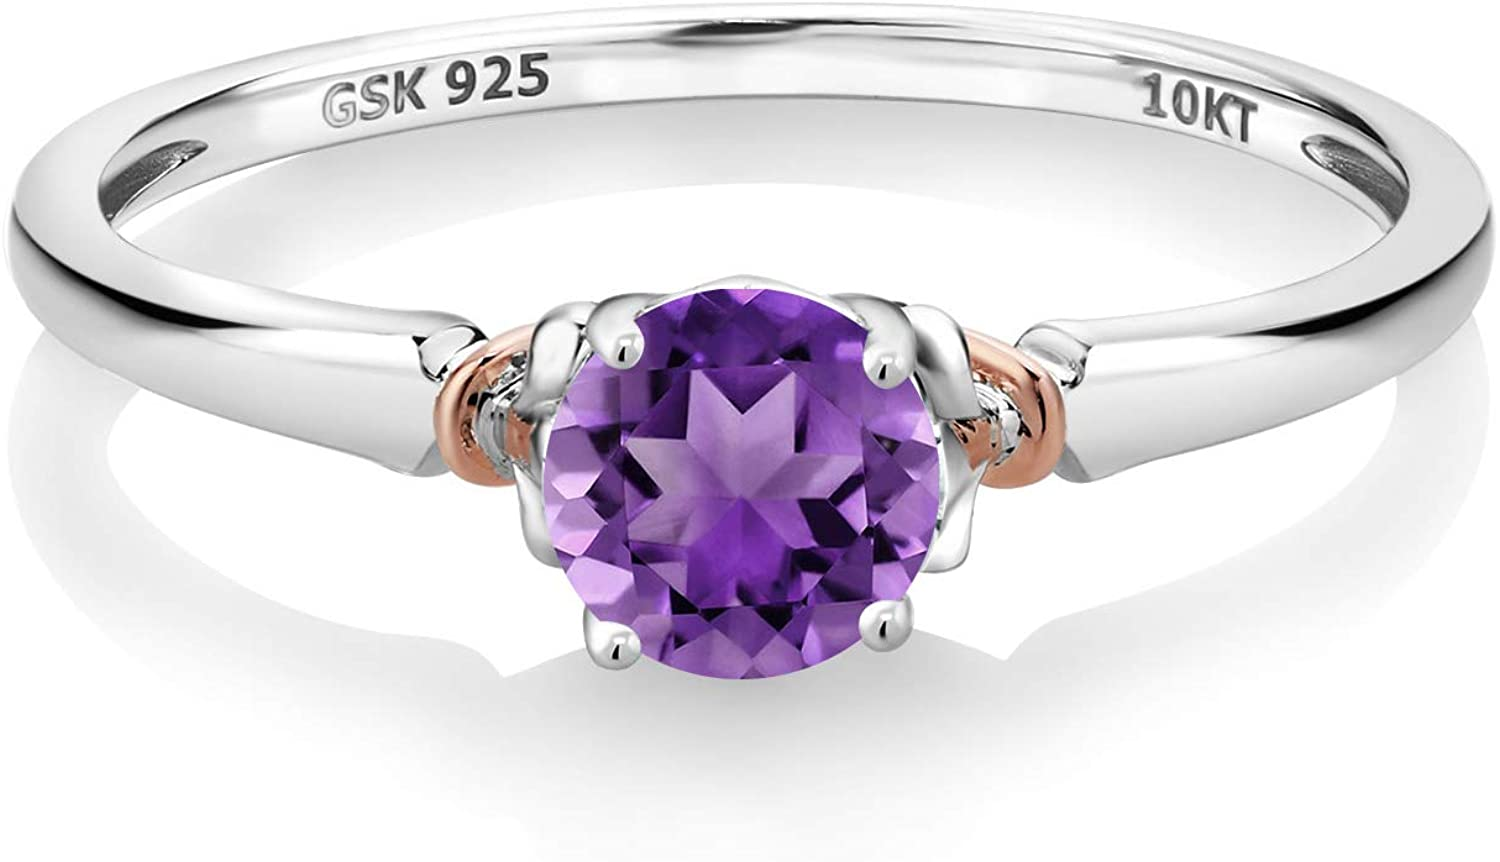 Gem Stone King 925 Silver and 10K Rose Gold Engagement Ring 0.48 Ct Round Purple Amethyst